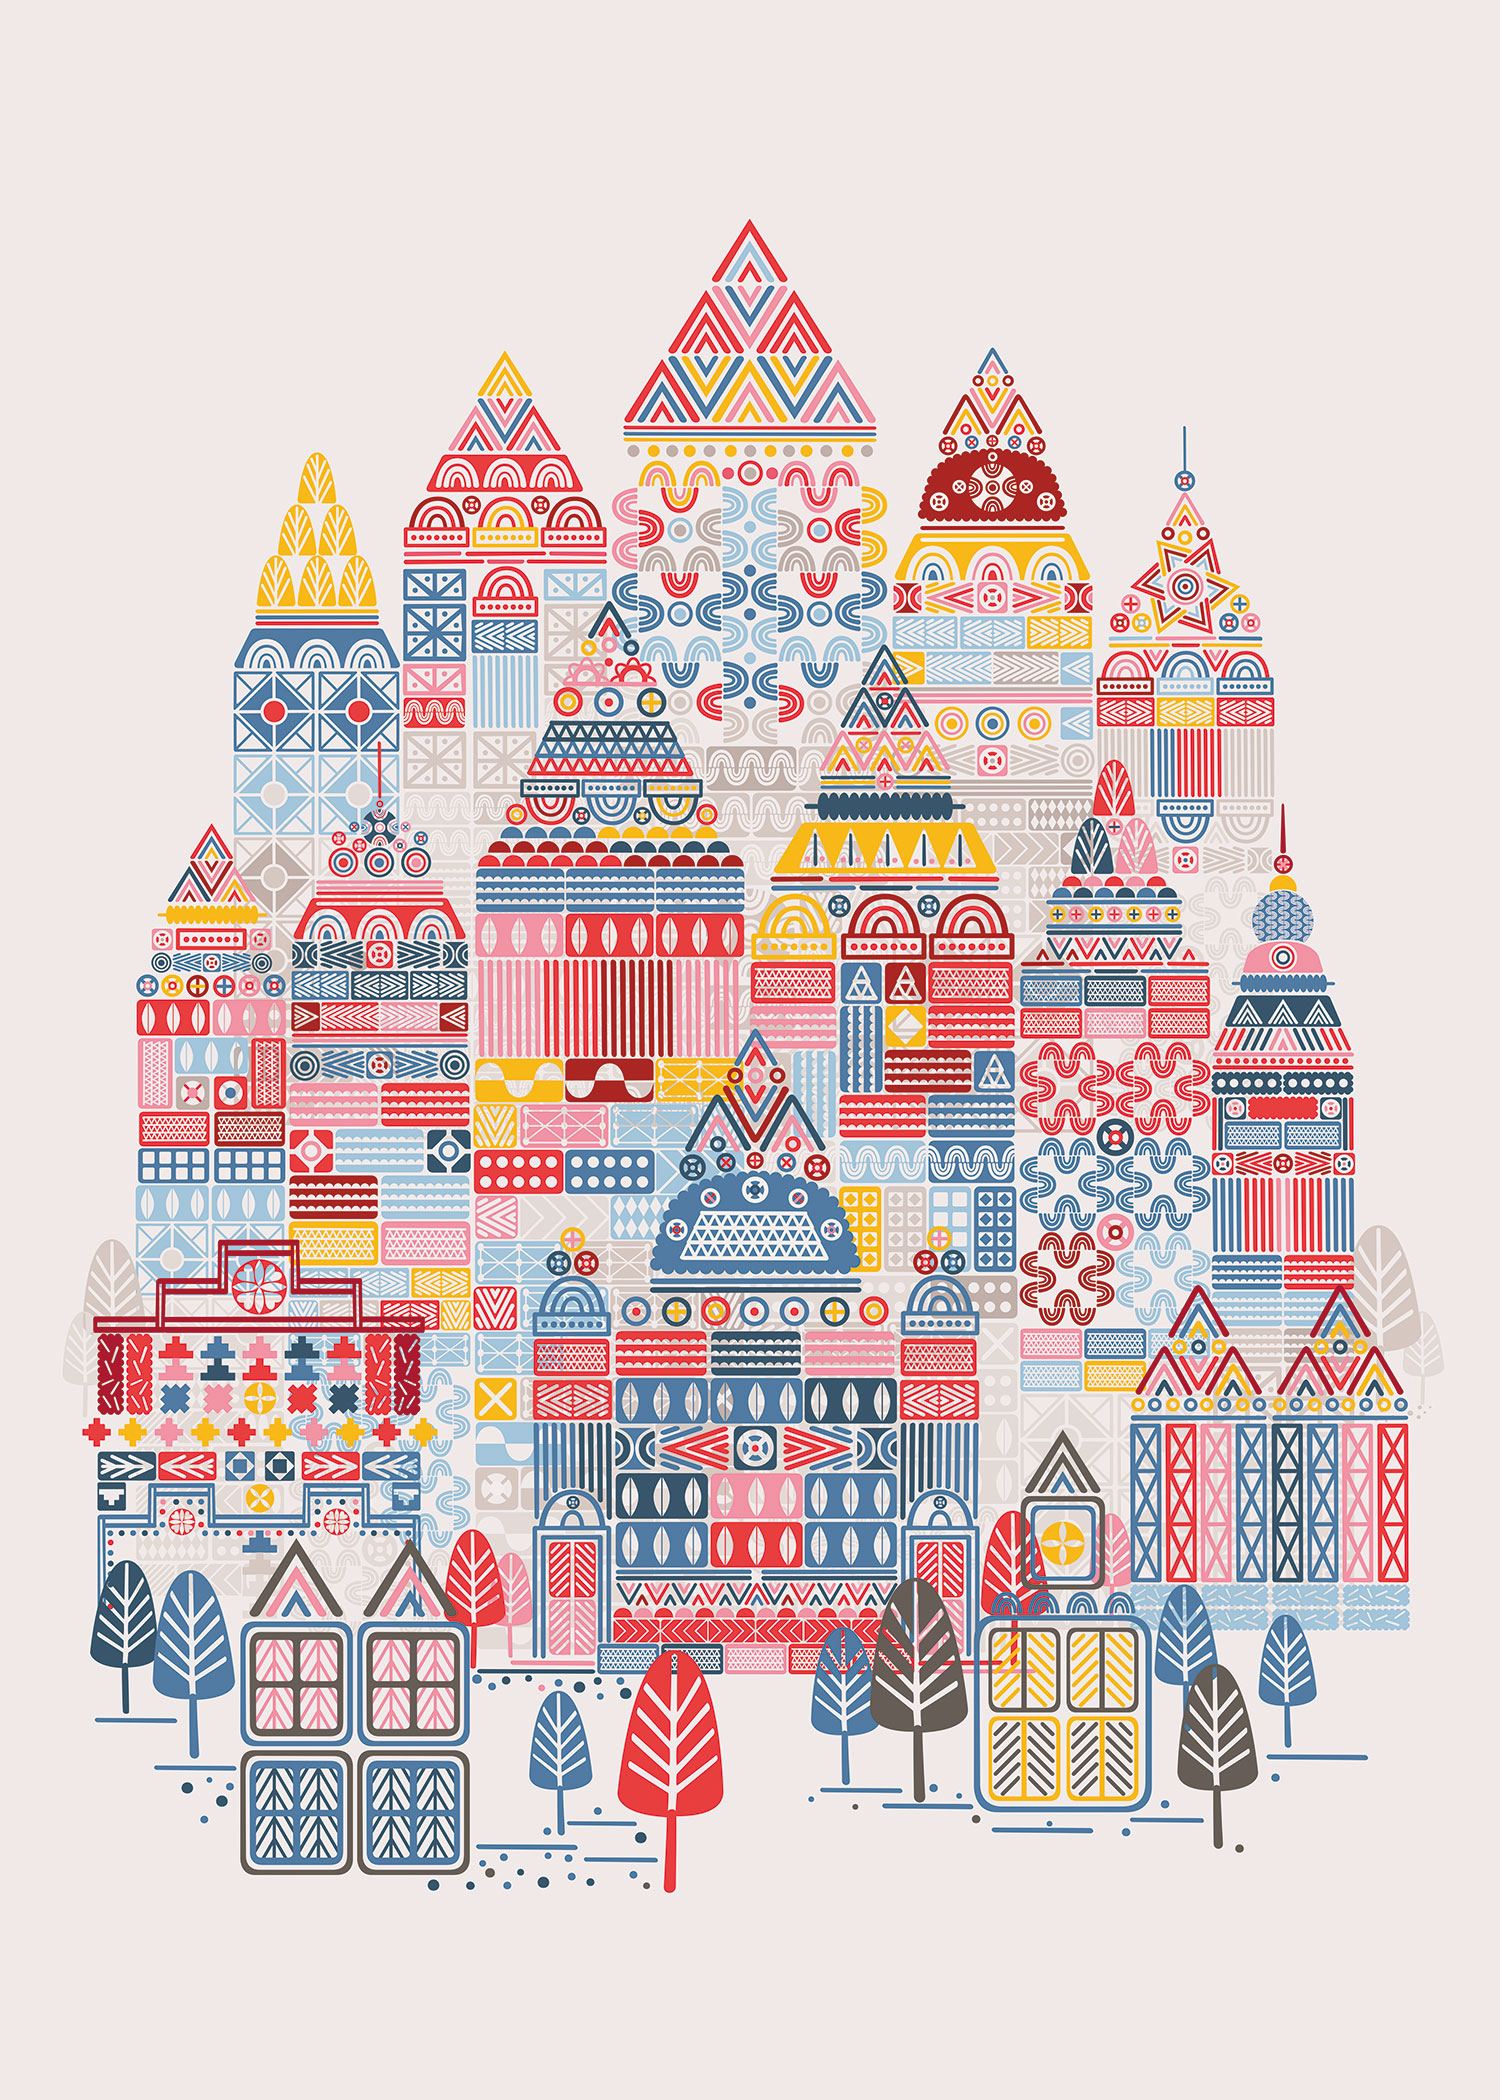 Utopian Day is a piece from the Utopian City series, built with geometric shapes and a complex color palette. By changing the color palette they bring out the warm and encouraging joy of the day.